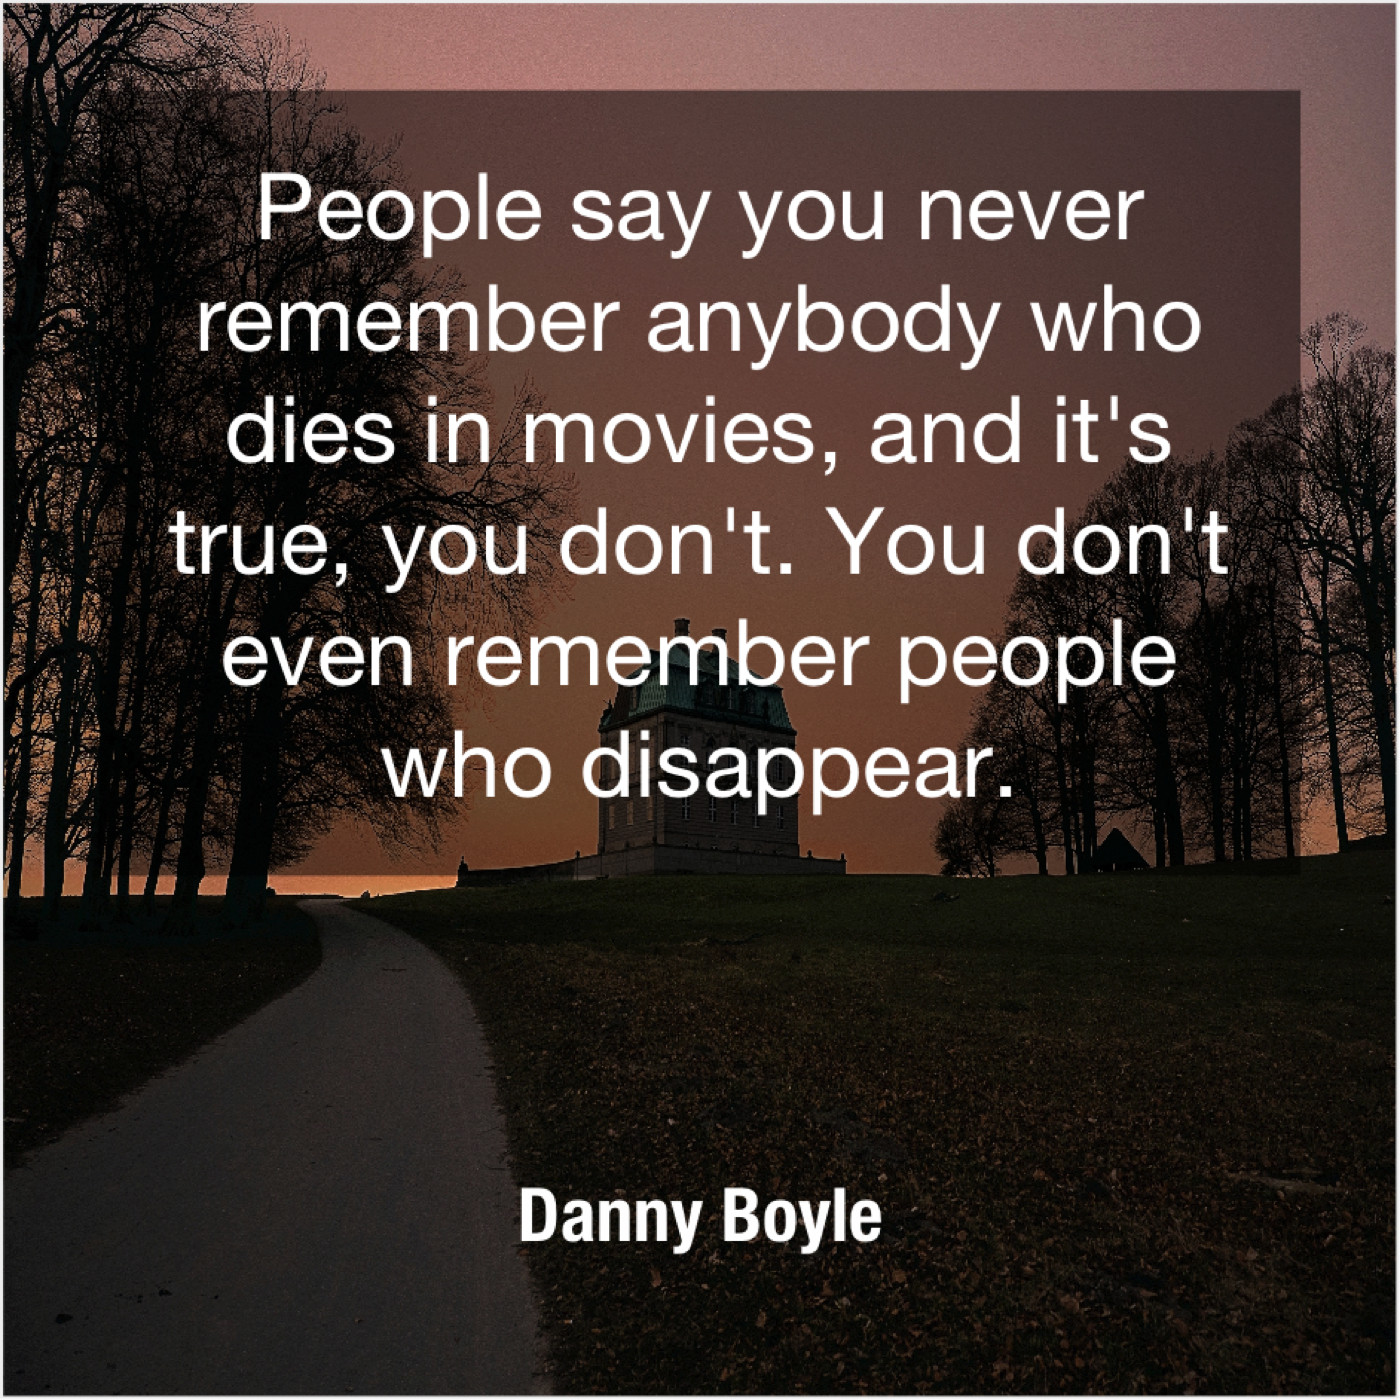 Danny Boyle - People say you never remember